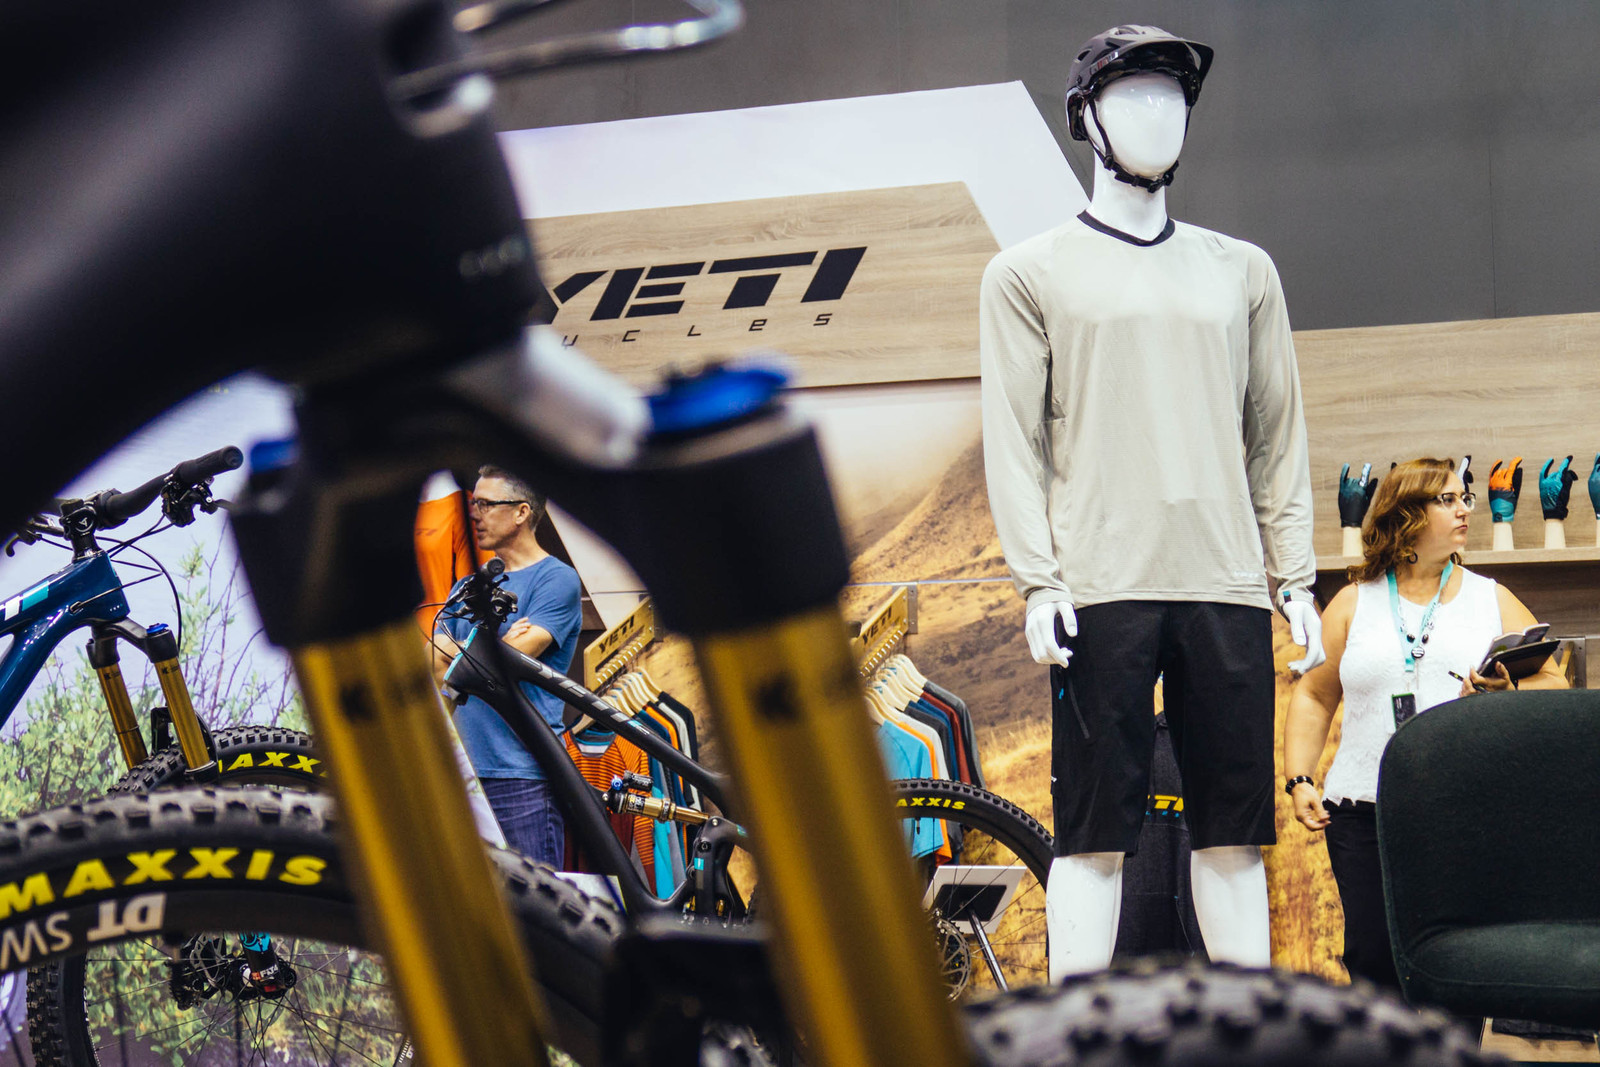 776f991e0 Yeti Cycles at Eurobike - TURQ.Air Apparel